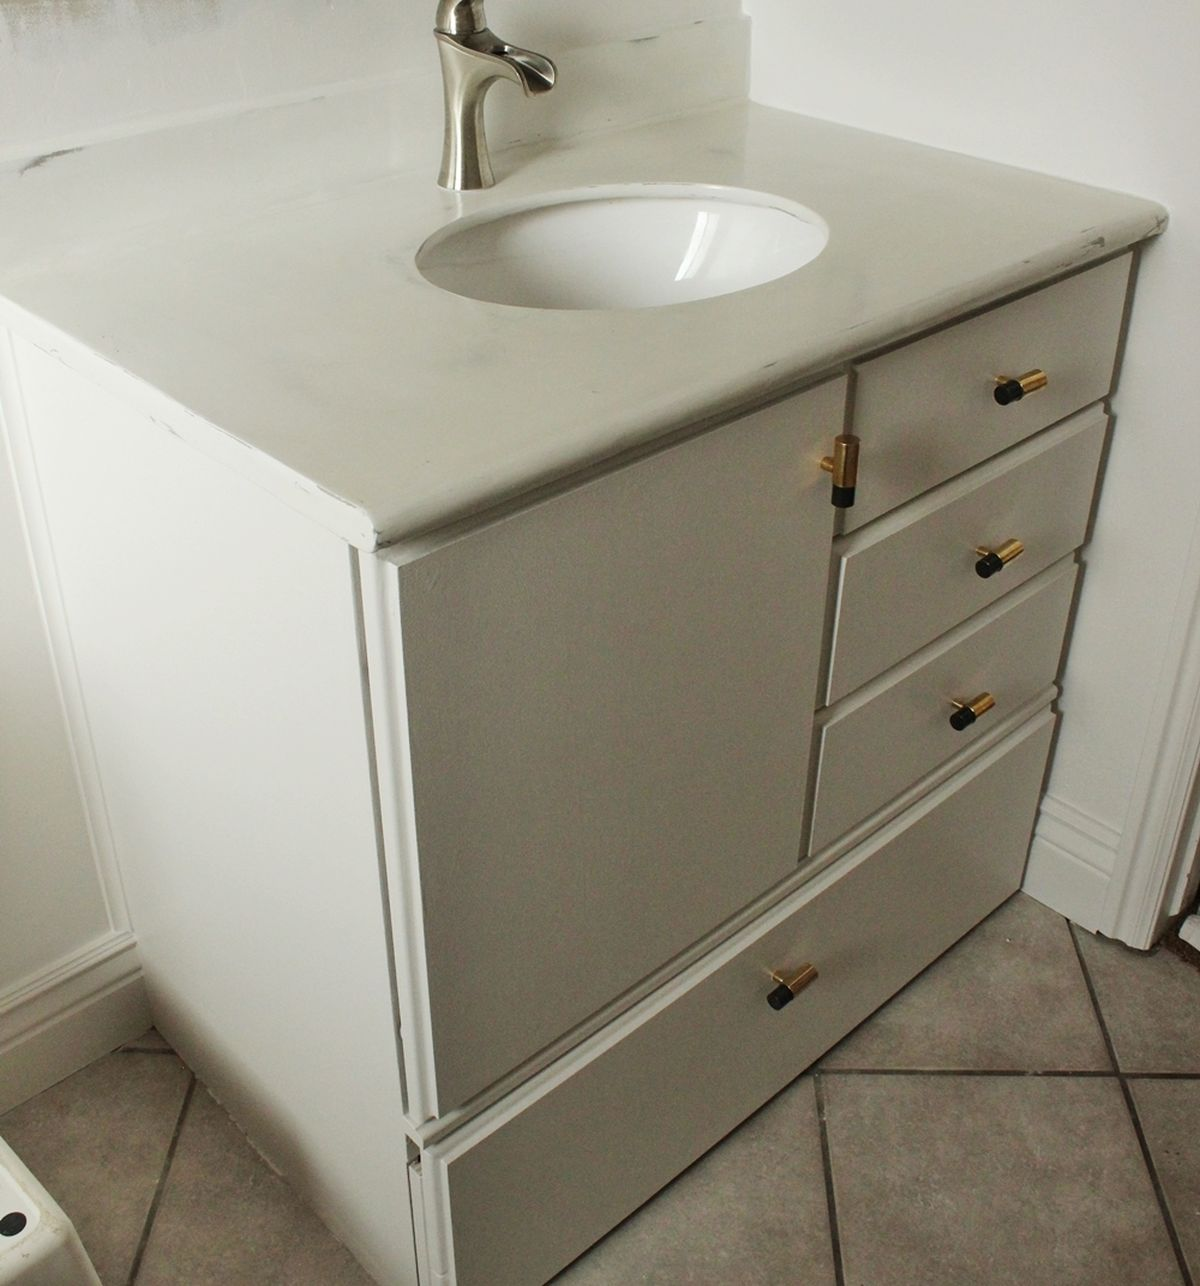 DIY Upgrade Bathroom Vanity Project